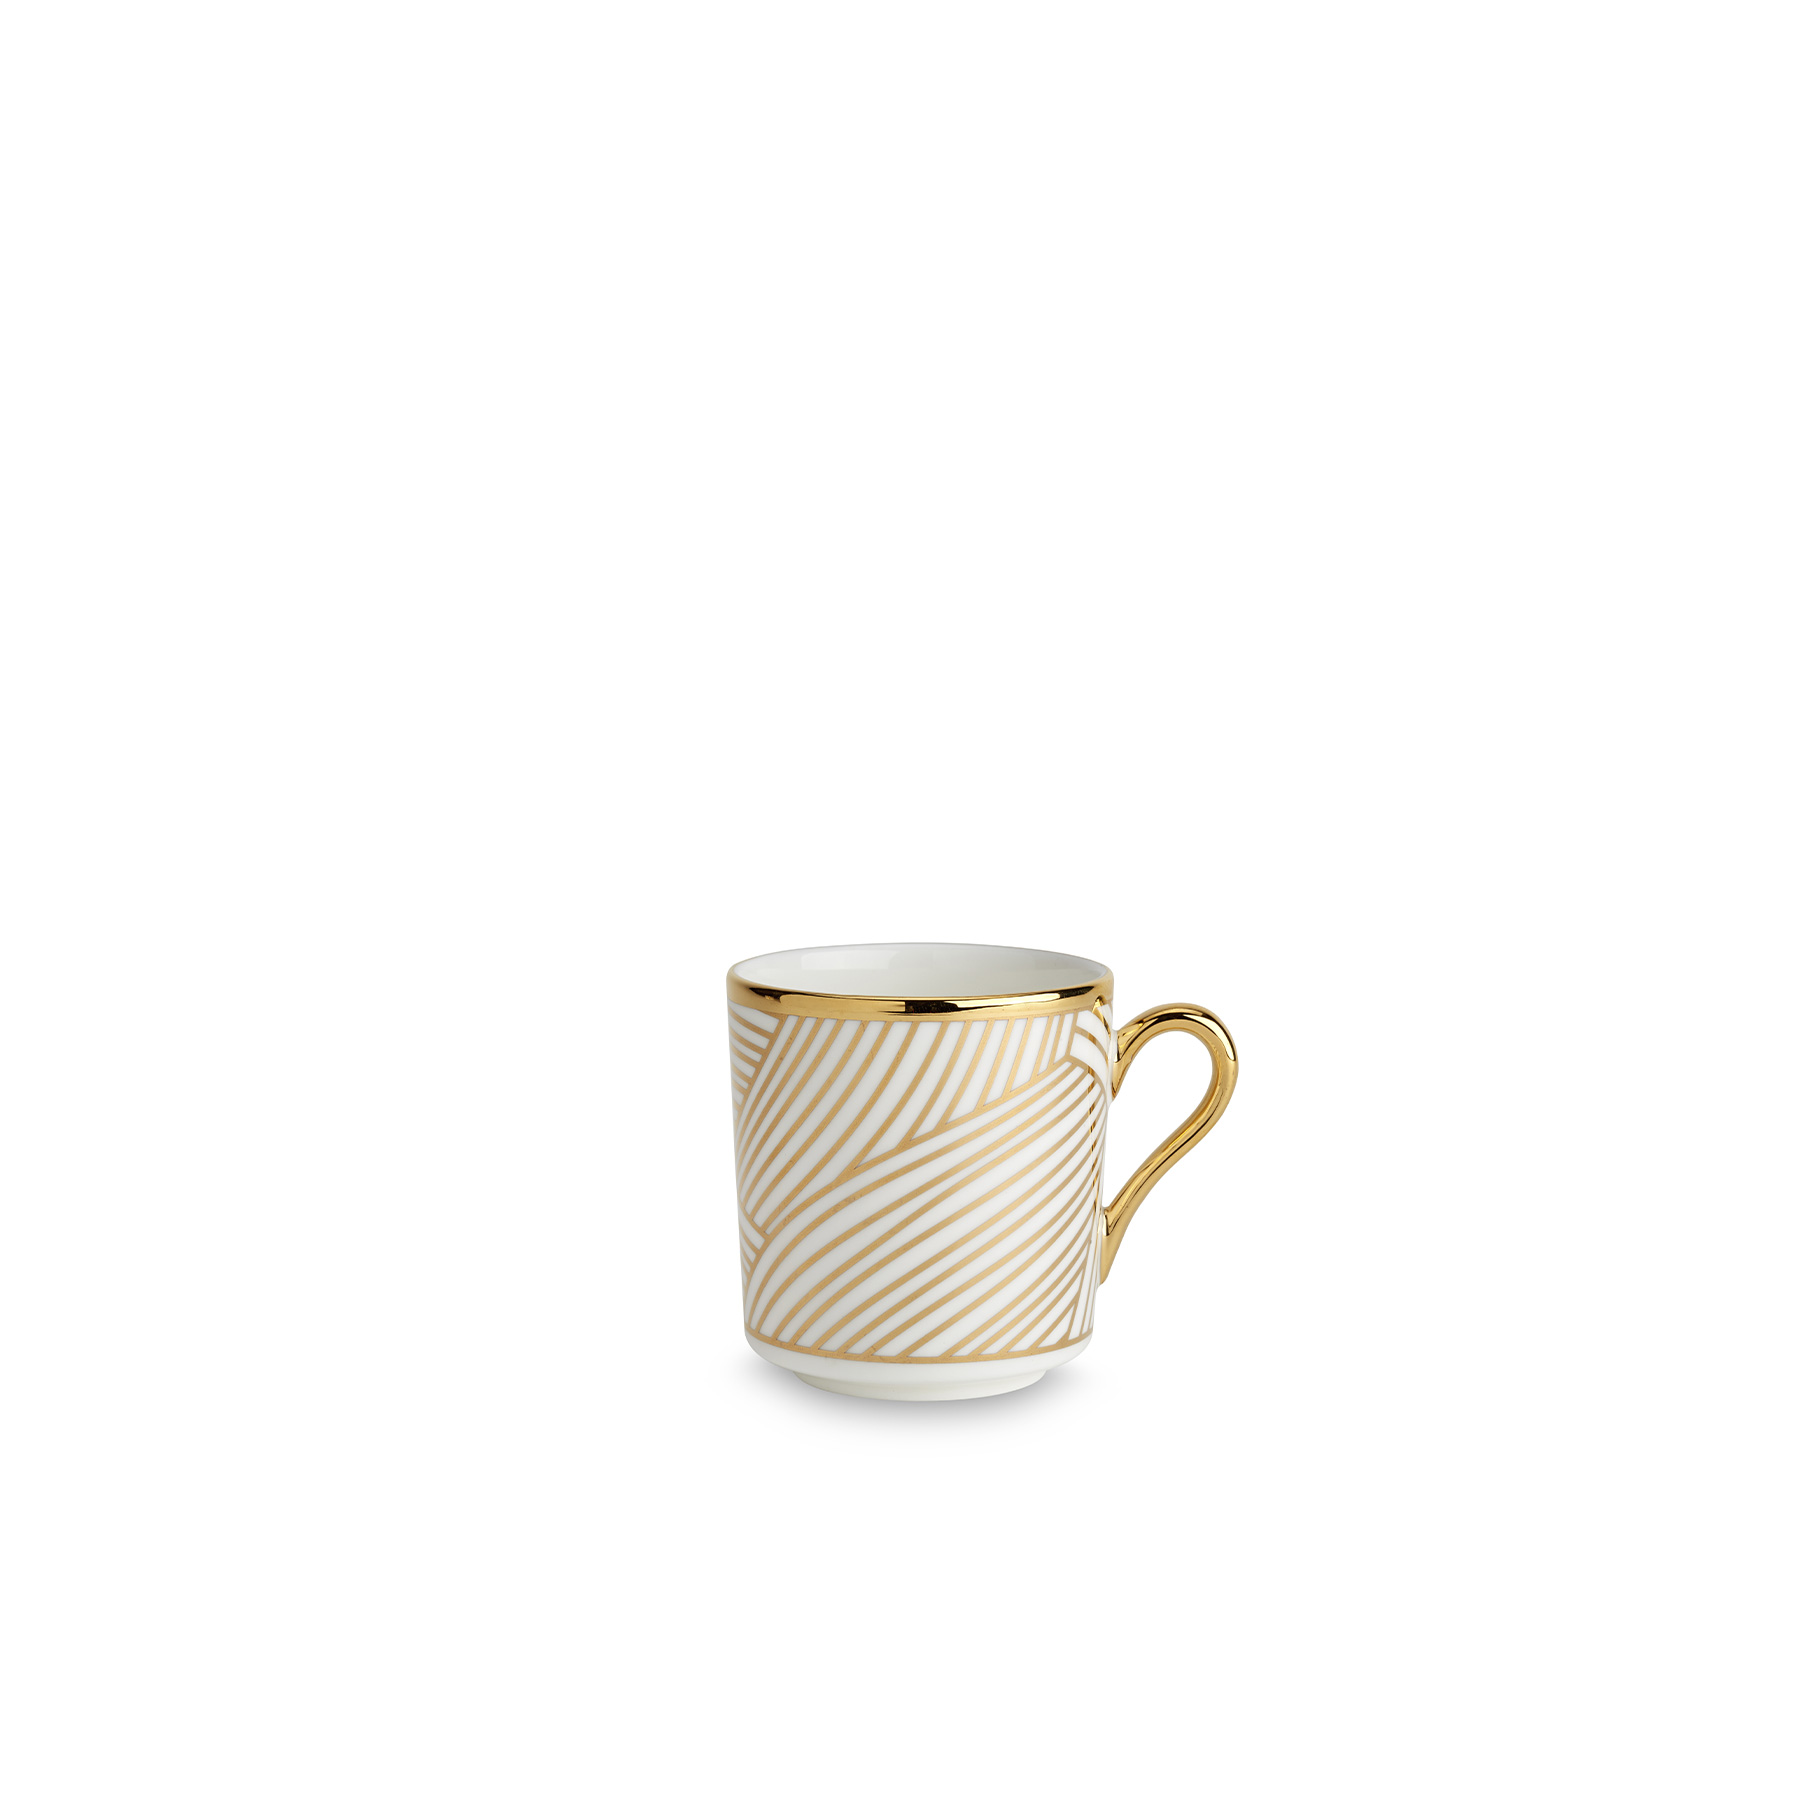 Lustre Espresso Cup Gold - Lustre, conceived by award-winning designer Bethan Gray uses a fine bone china body paired with 22-carat gold and black decals, and finished with hand gilded details. The collection features a reinterpretation of Bethan's hand-drawn Dhow pattern originally inspired by the billowing sails of Oman's distinctive sailing boats. Possible only by hand, the pattern is meticulously applied in three separate pieces in a pattern that is complex with its curvatures. The decals of 22-carat gold and black are fired, hand finished with 22-carat gold and finally fired for a second time. Hand wash only.  | Matter of Stuff